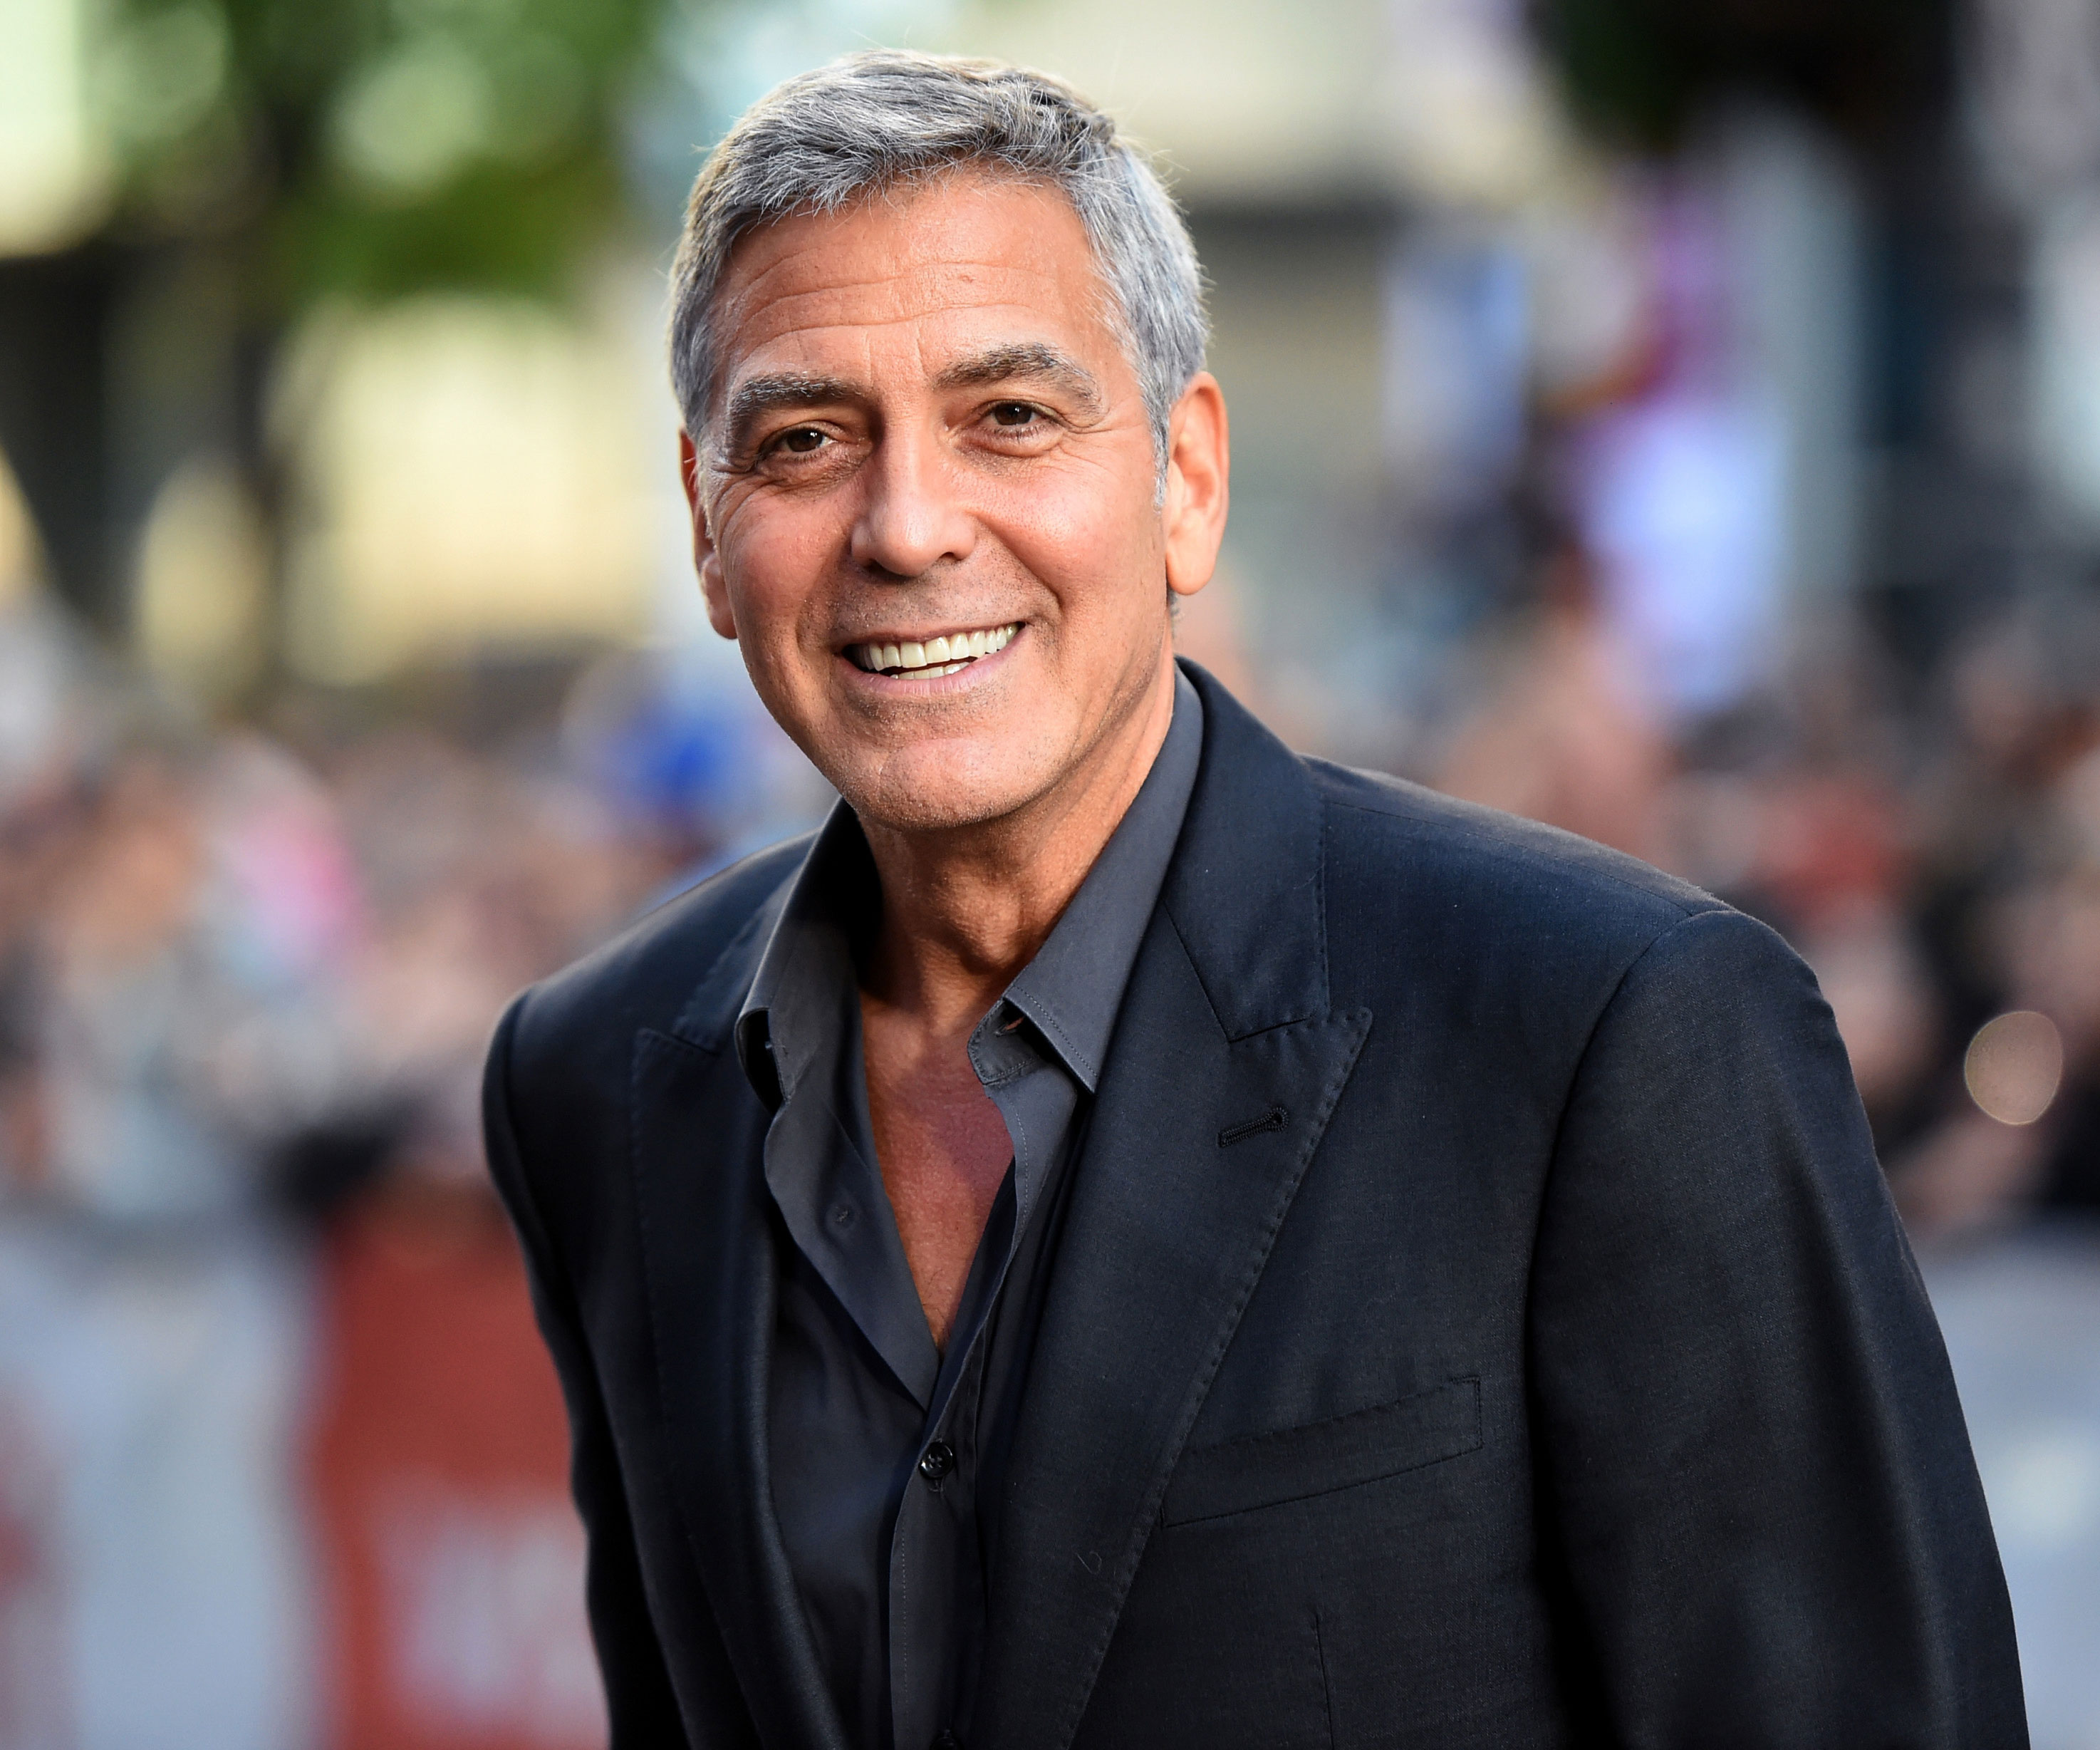 George Clooney gave his best friends $1 million each